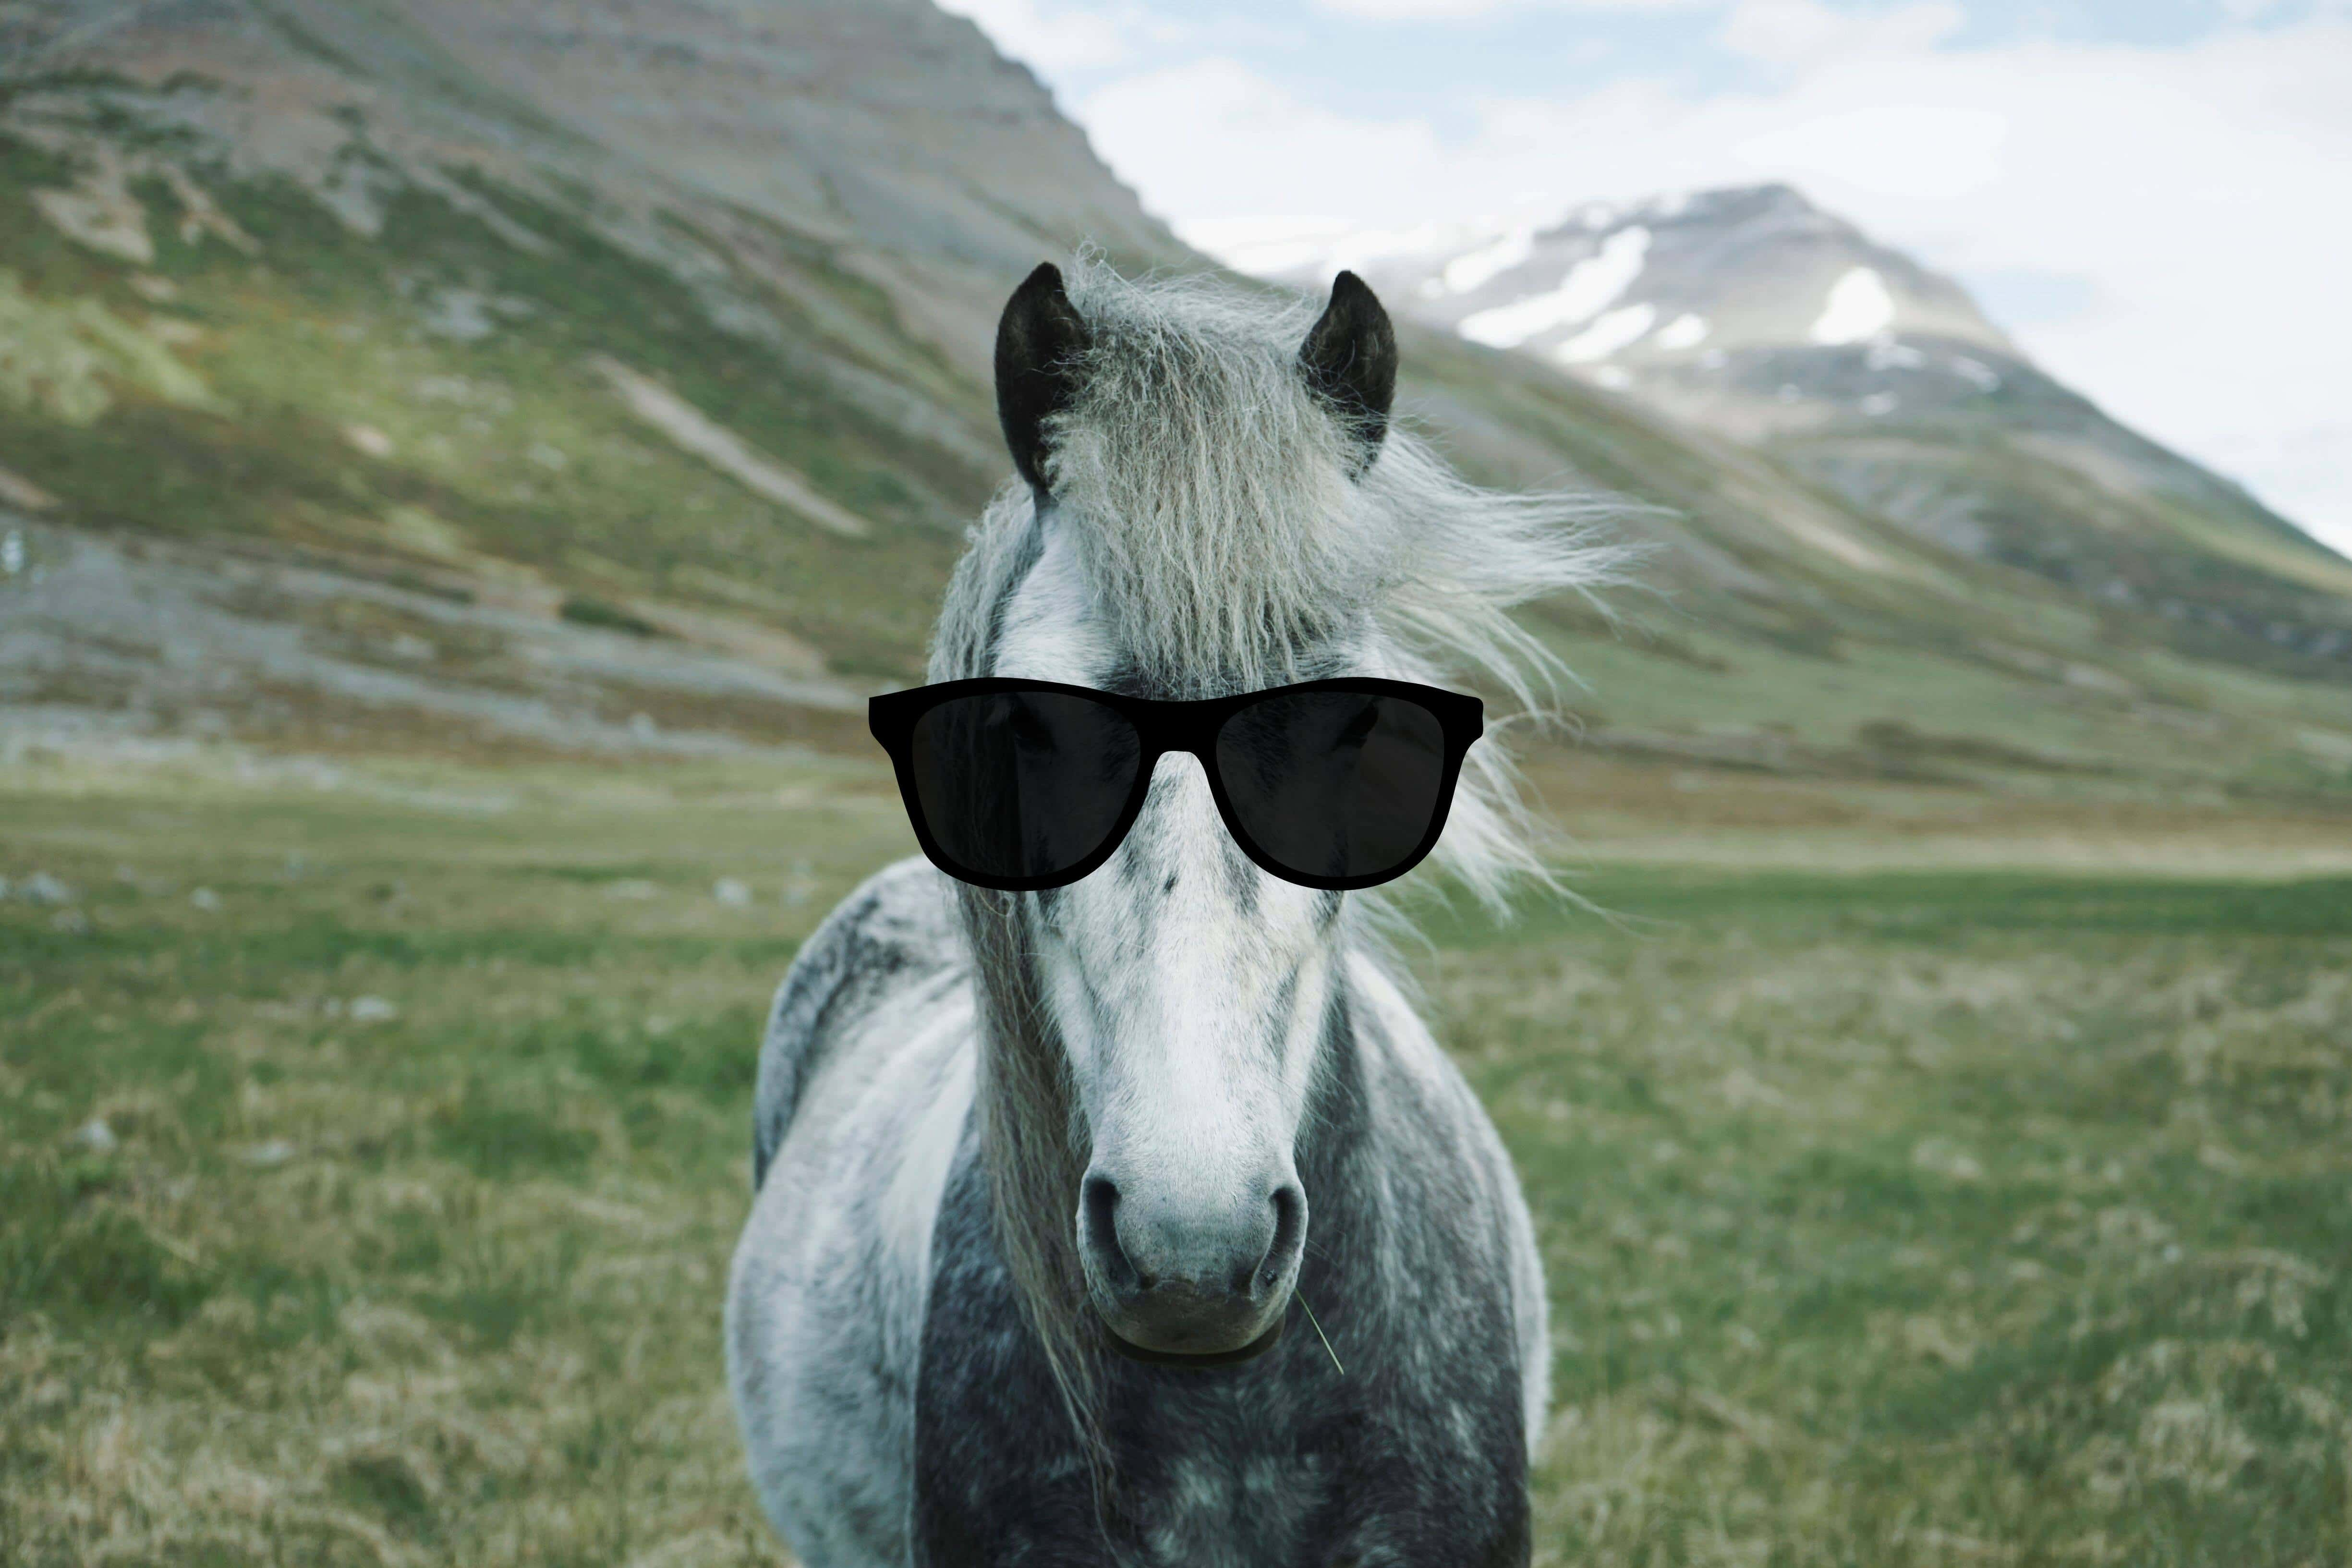 Cool celebrity horse